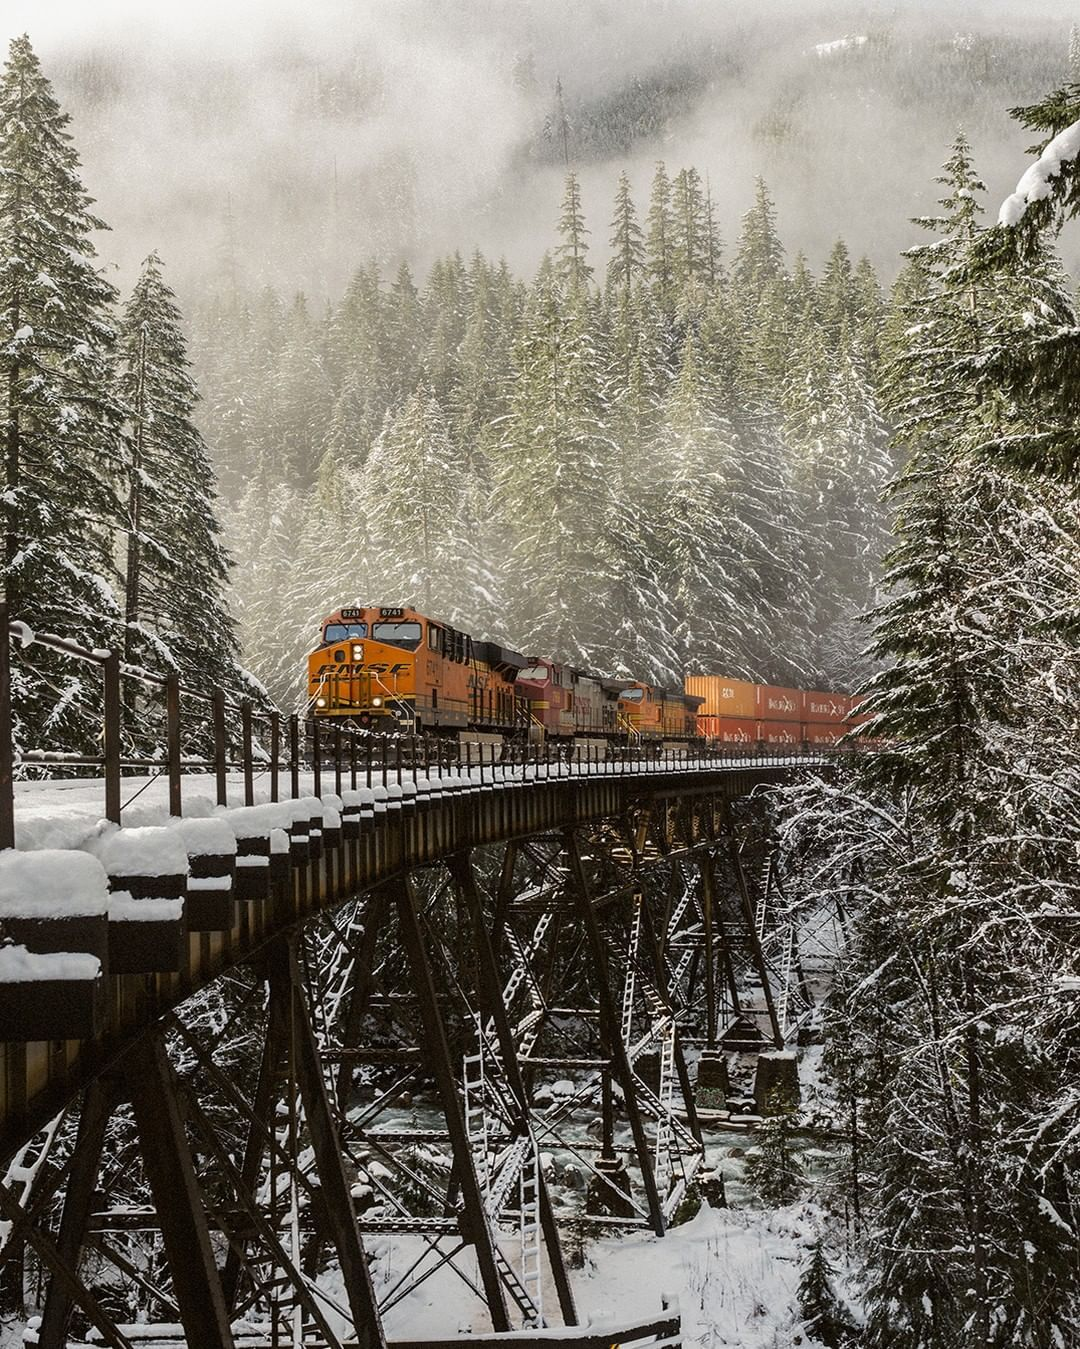 Bnsf Railway On Instagram On The Sixth Day Of Trainmas Bnsf Gave To Me Six Tracks A Laying Five Thousand Employees Four S Bnsf Railway Polar Express Train Hd wallpaper winter snow train forest